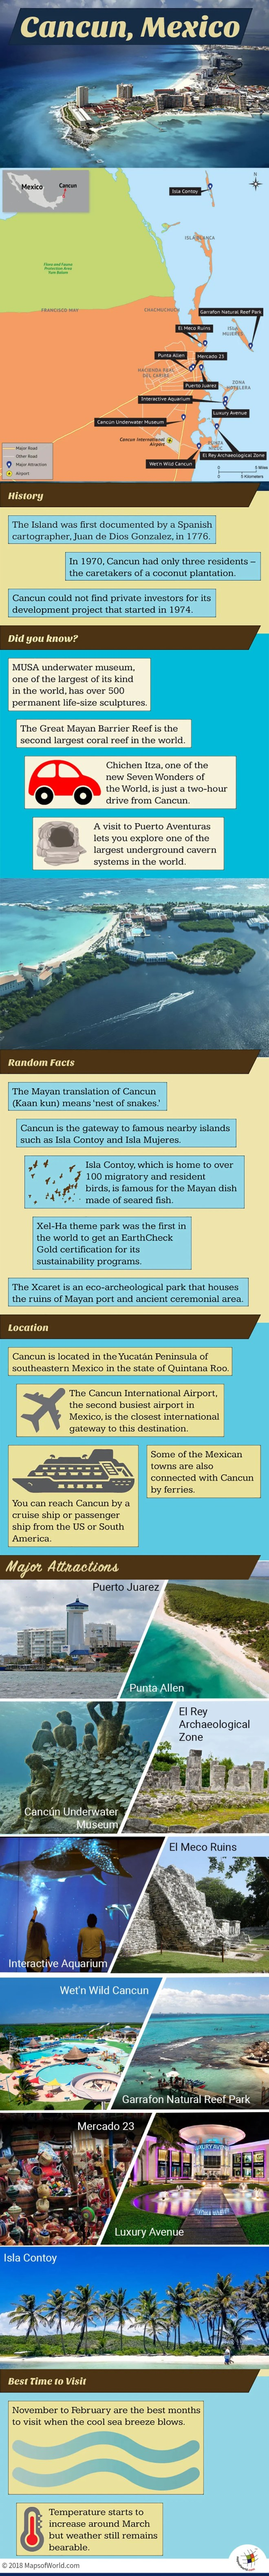 Infographic Depicting Cancún Tourist Attractions